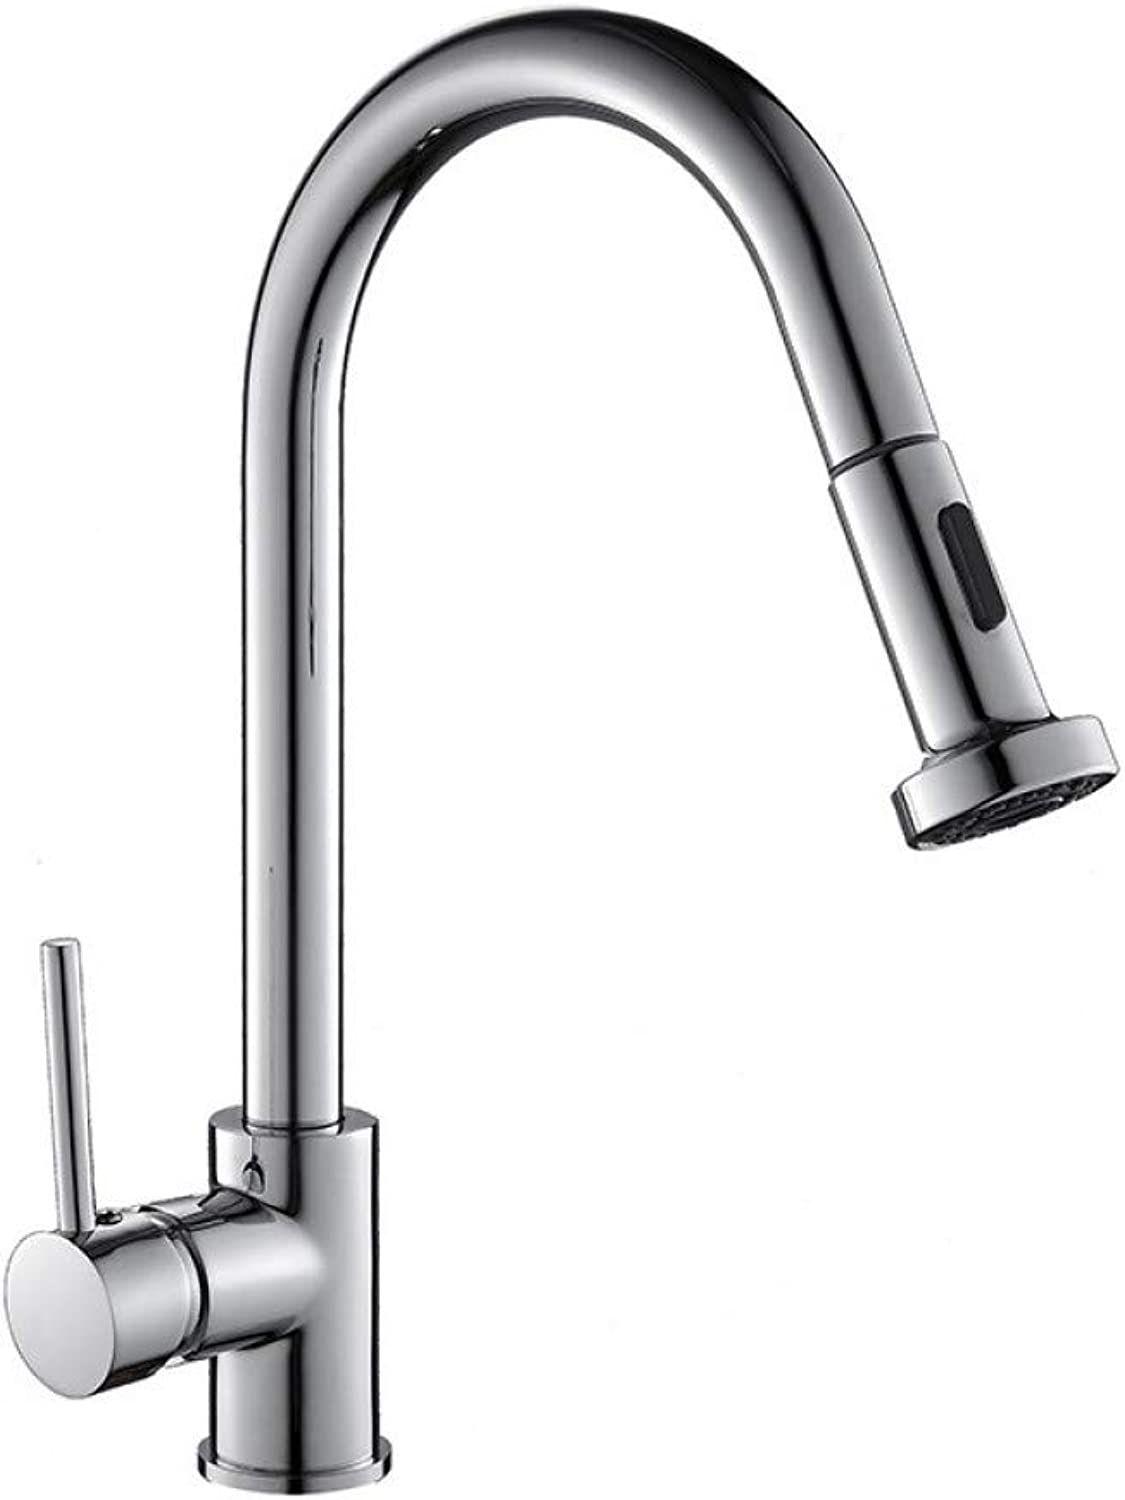 SUHANG Faucet Chrome Brass Pull Out Kitchen Faucet Kitchen Sink Mixer Hot and Cold Kitchen Sink Tap